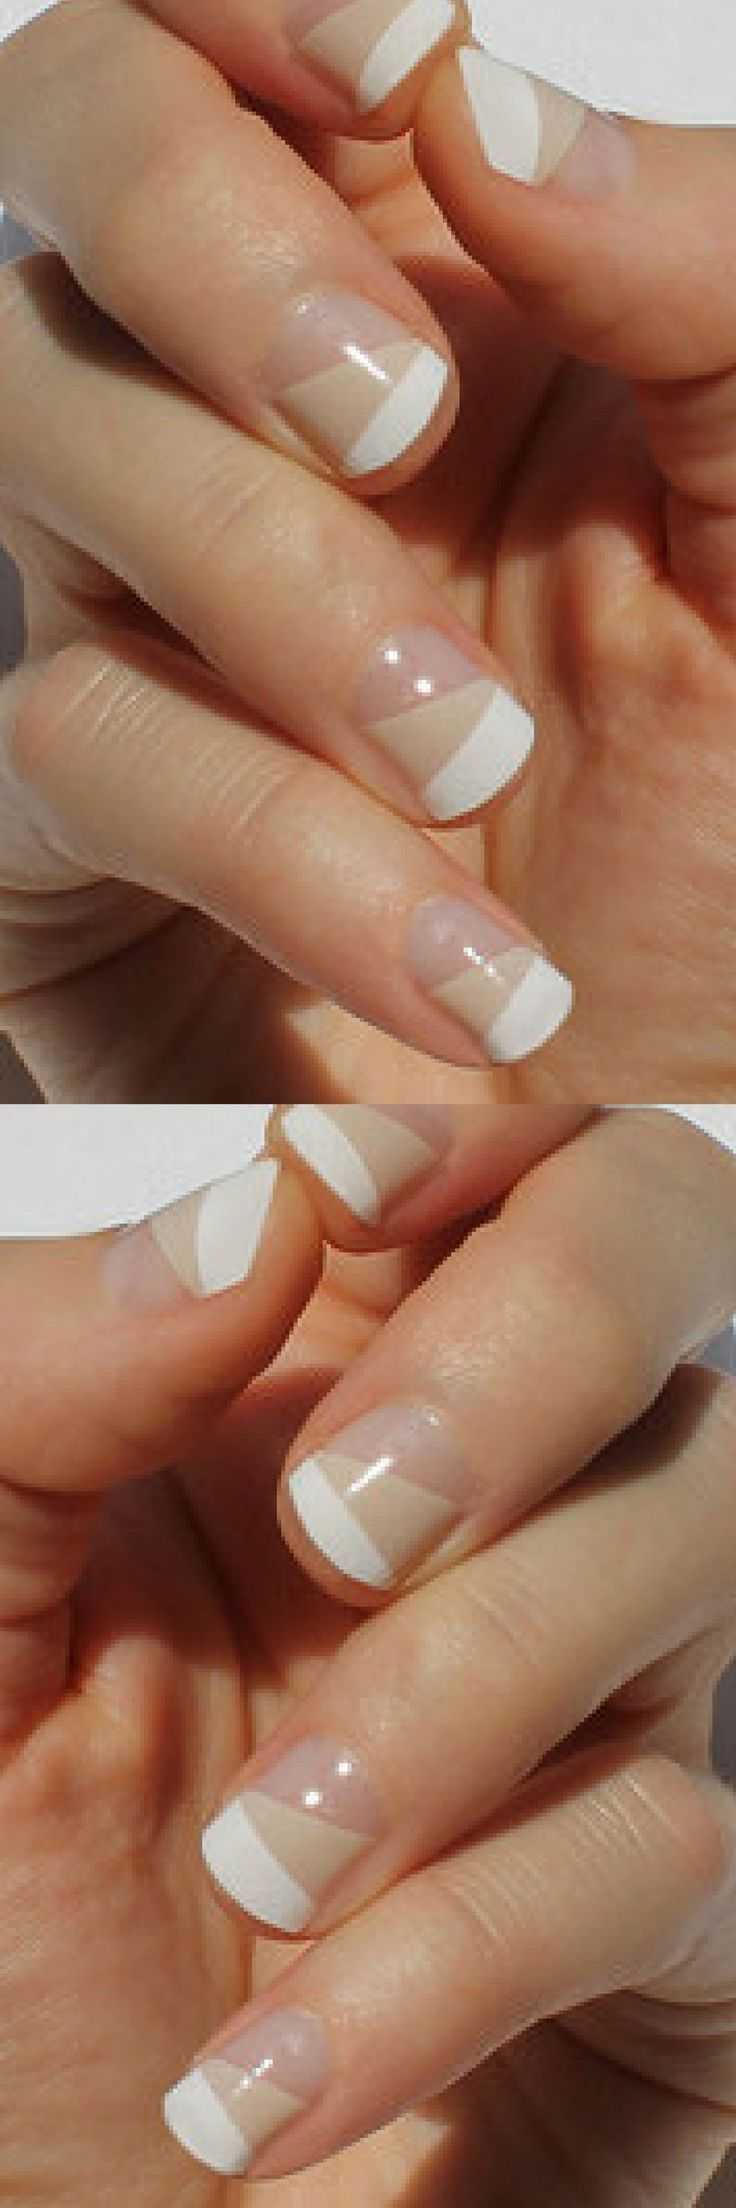 White & Nude Ava Nail Wraps. Just heat, stick & file your way to awesome nails!   So Gloss  Transparent Nail Wraps can be worn on your bare nail or layered over  your favorite polish, the possibilities are endless! The design is  opaque, the rest of the wrap is crystal clear. #nailart #ad #naildesigns #springnails